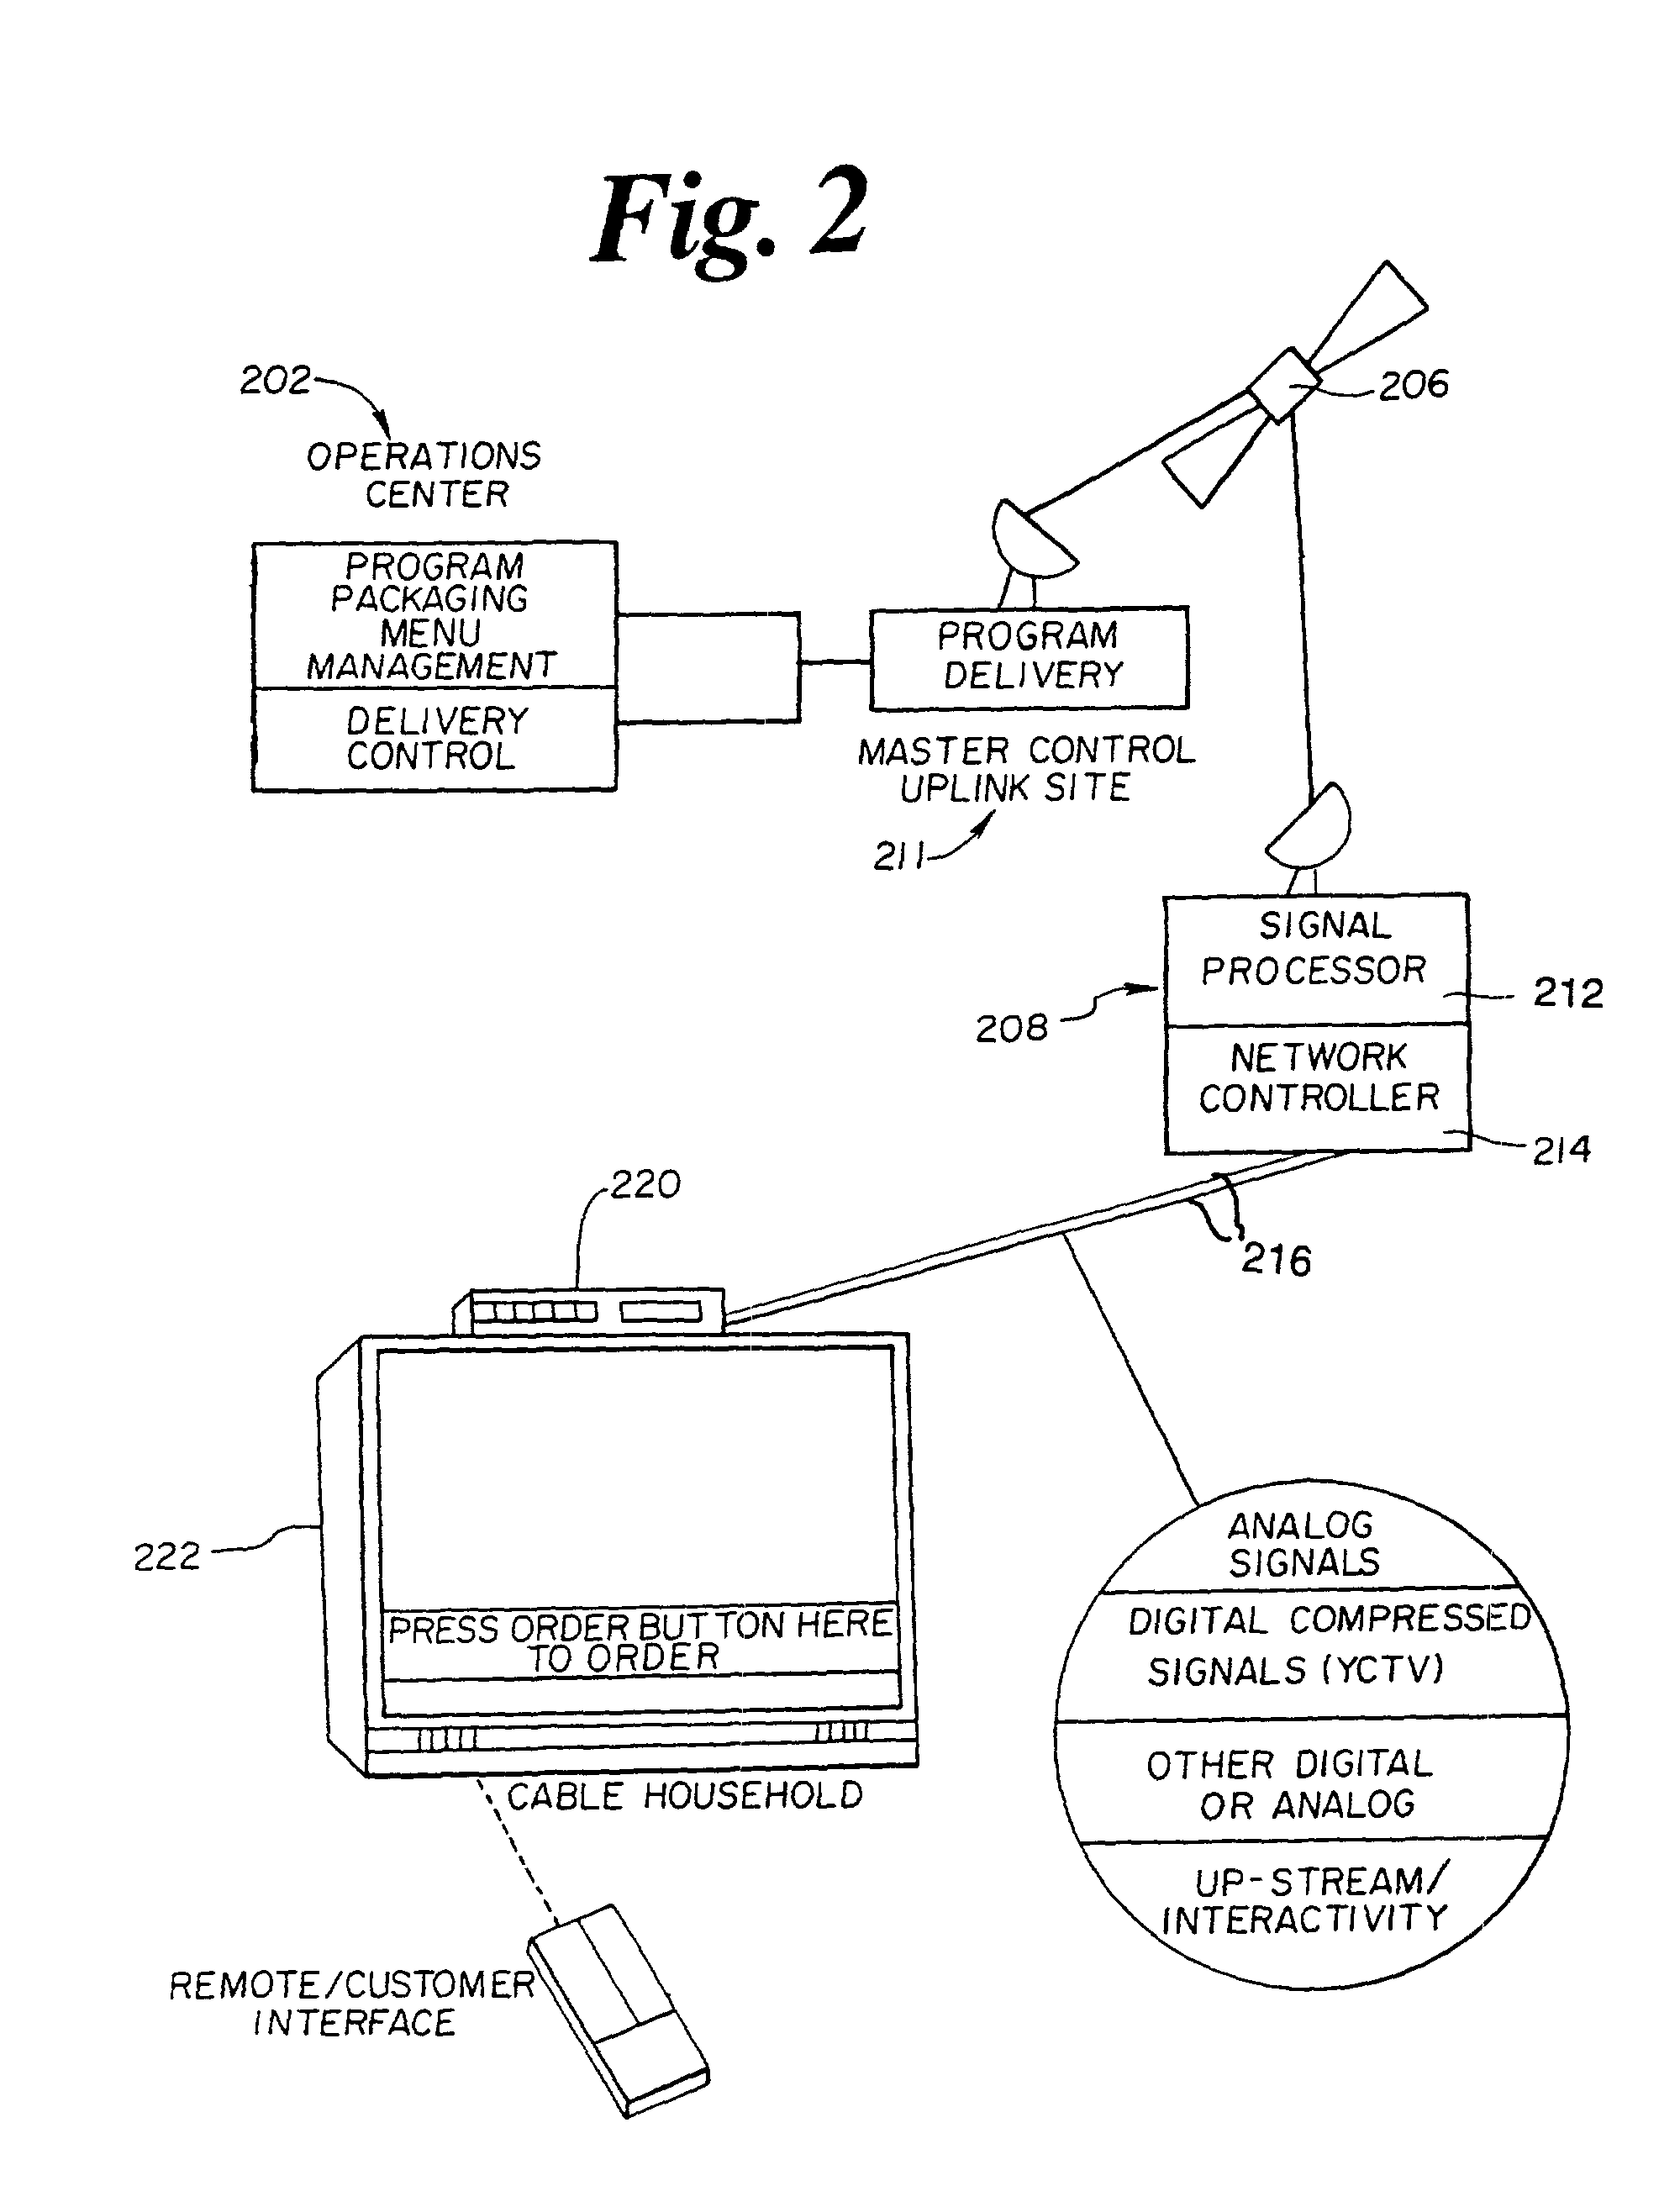 Us7836481b1 set top terminal for generating an interactive electronic program guide for use with television delivery system patents